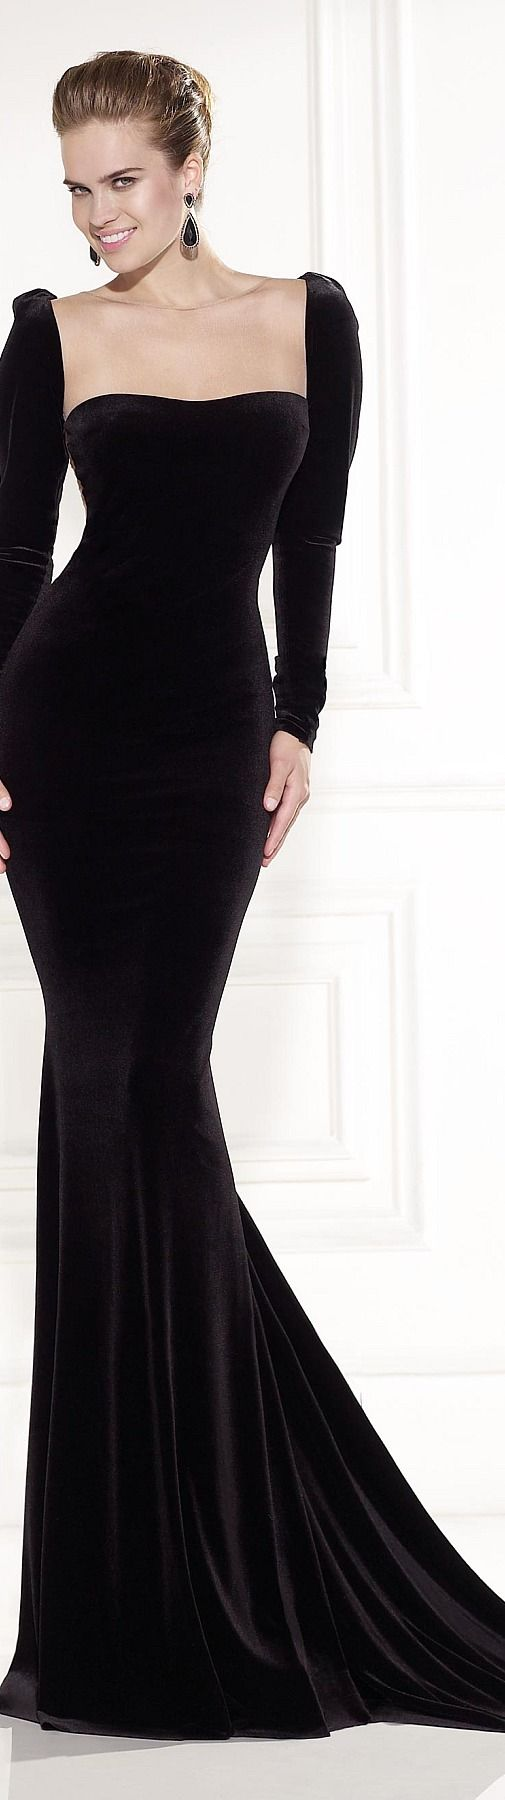 Black dress very - Find This Pin And More On Evening Dress Prom Dresses